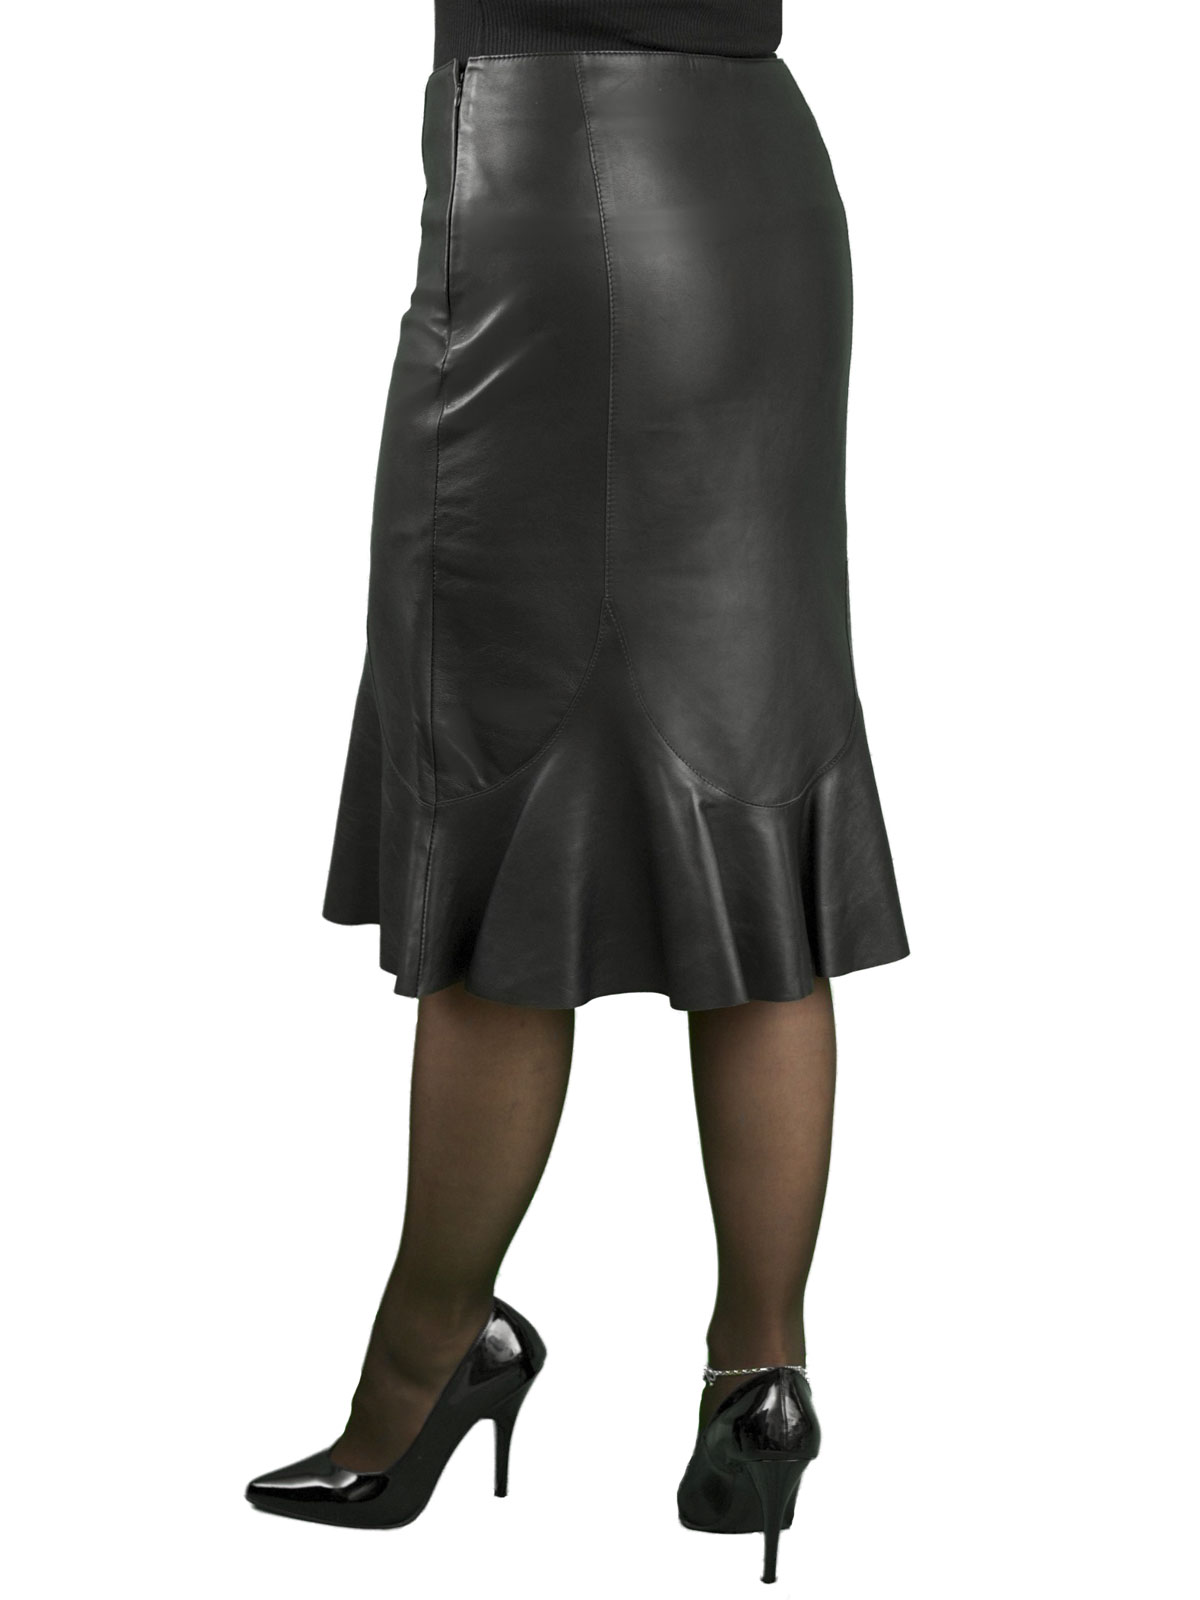 fishtail leather skirt below knee length 2 colours